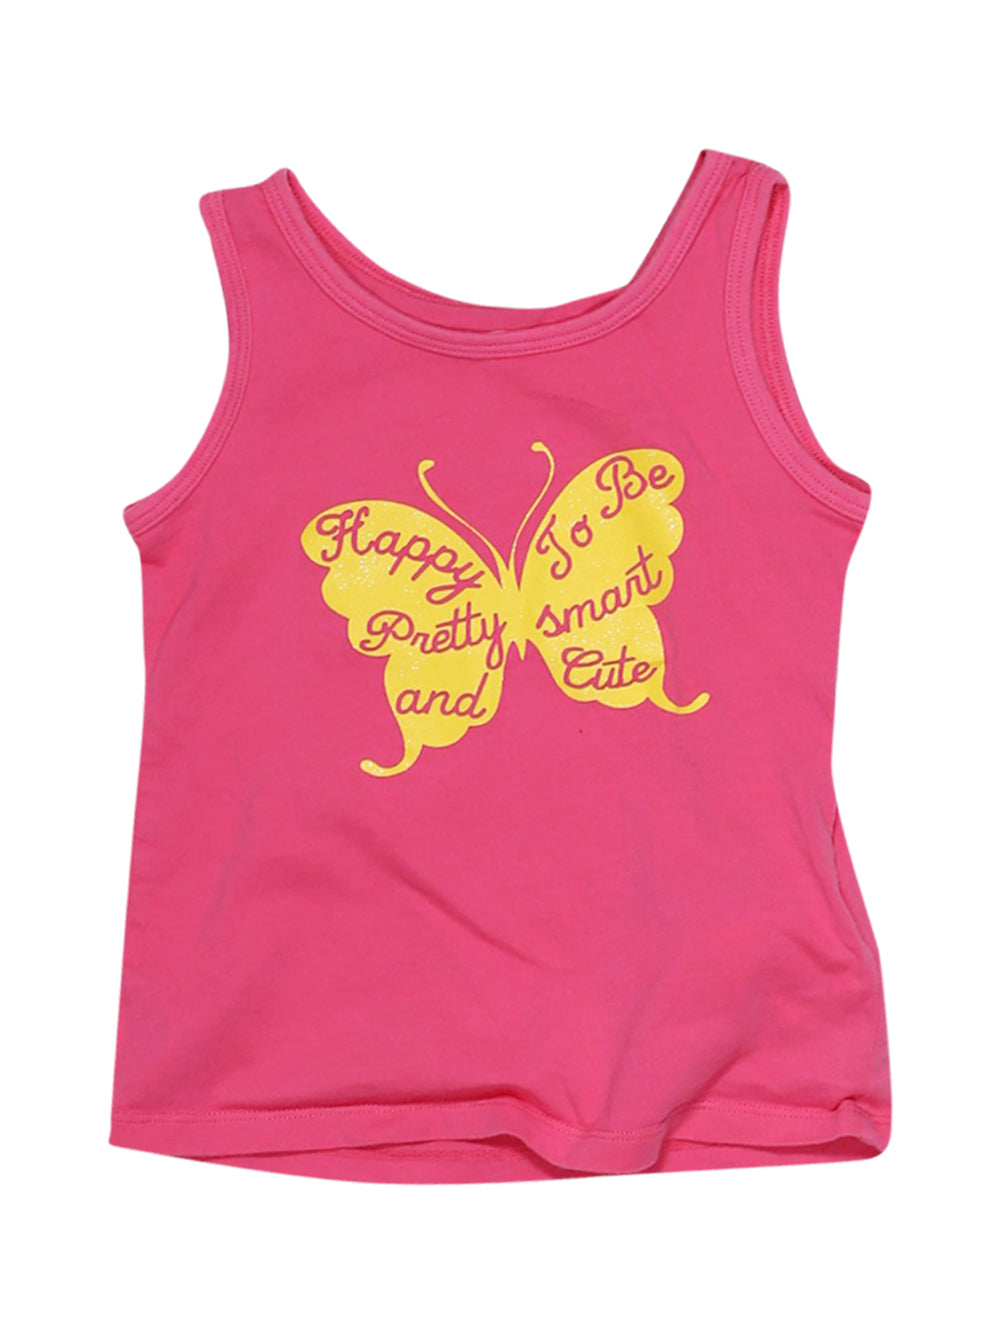 Front photo of Preloved Chicco Pink Girl's sleeveless top - size 2-3 yrs